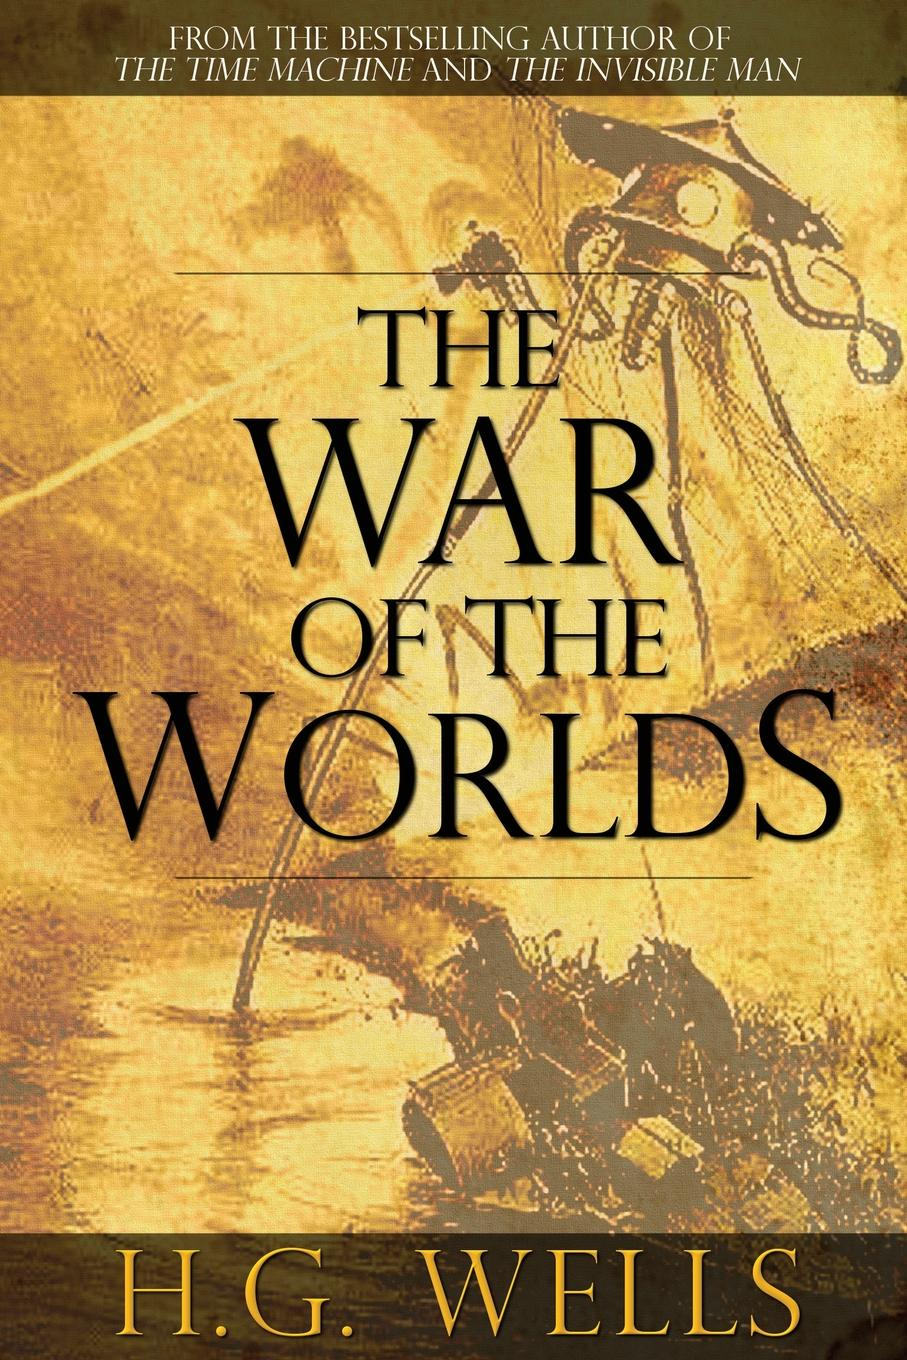 H. G. Wells The War of the Worlds h g wells the wonderful visit